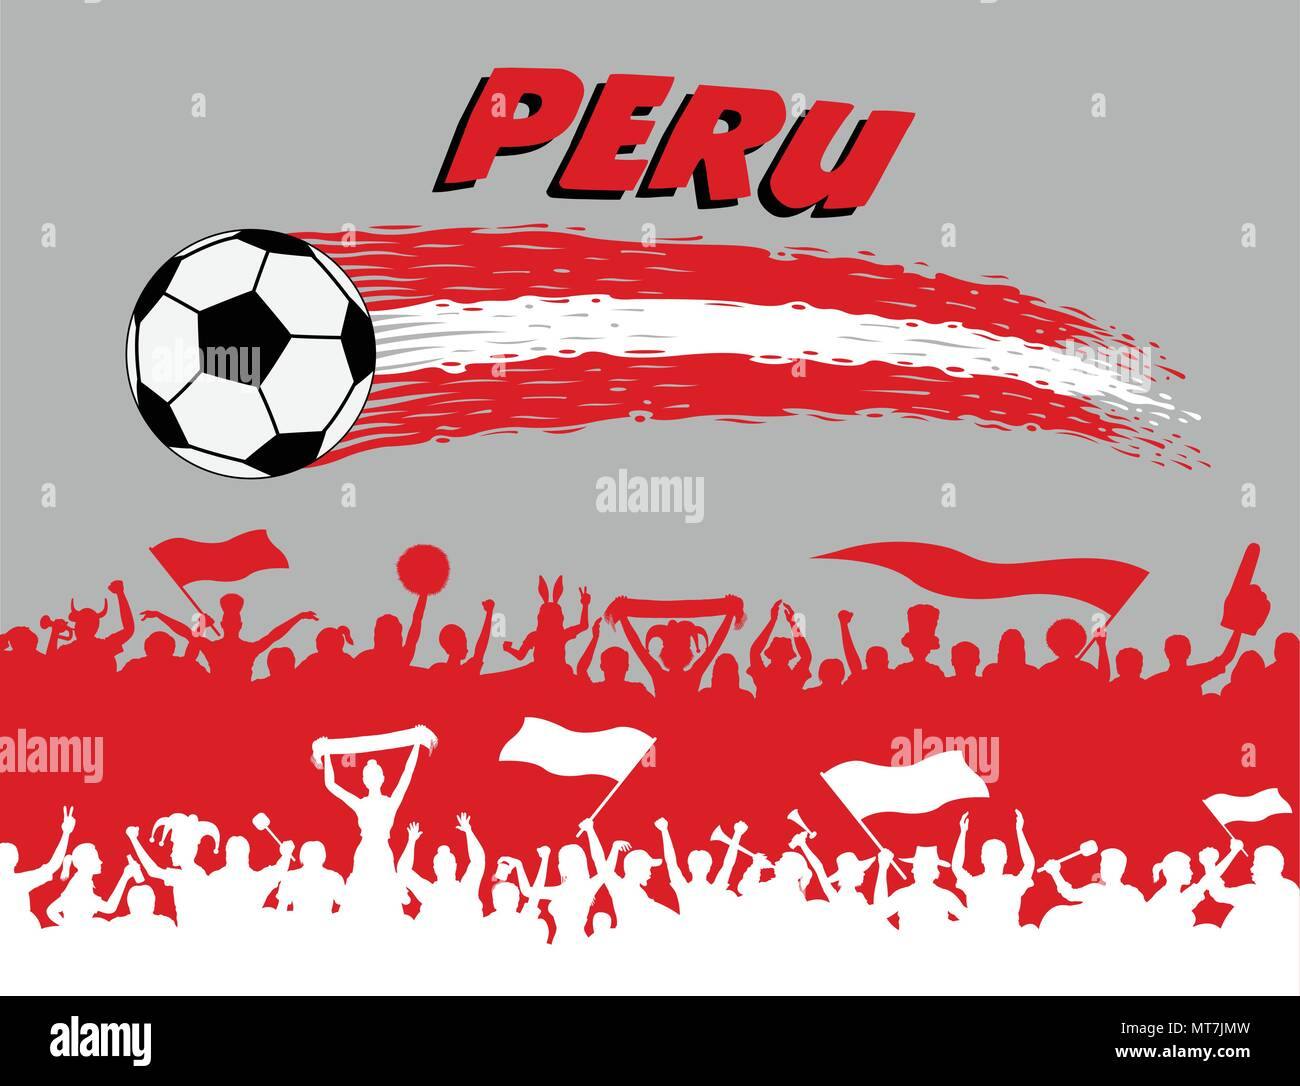 5ec6b961003 Peru flag colors with soccer ball and Peruvian supporters silhouettes. All  the objects